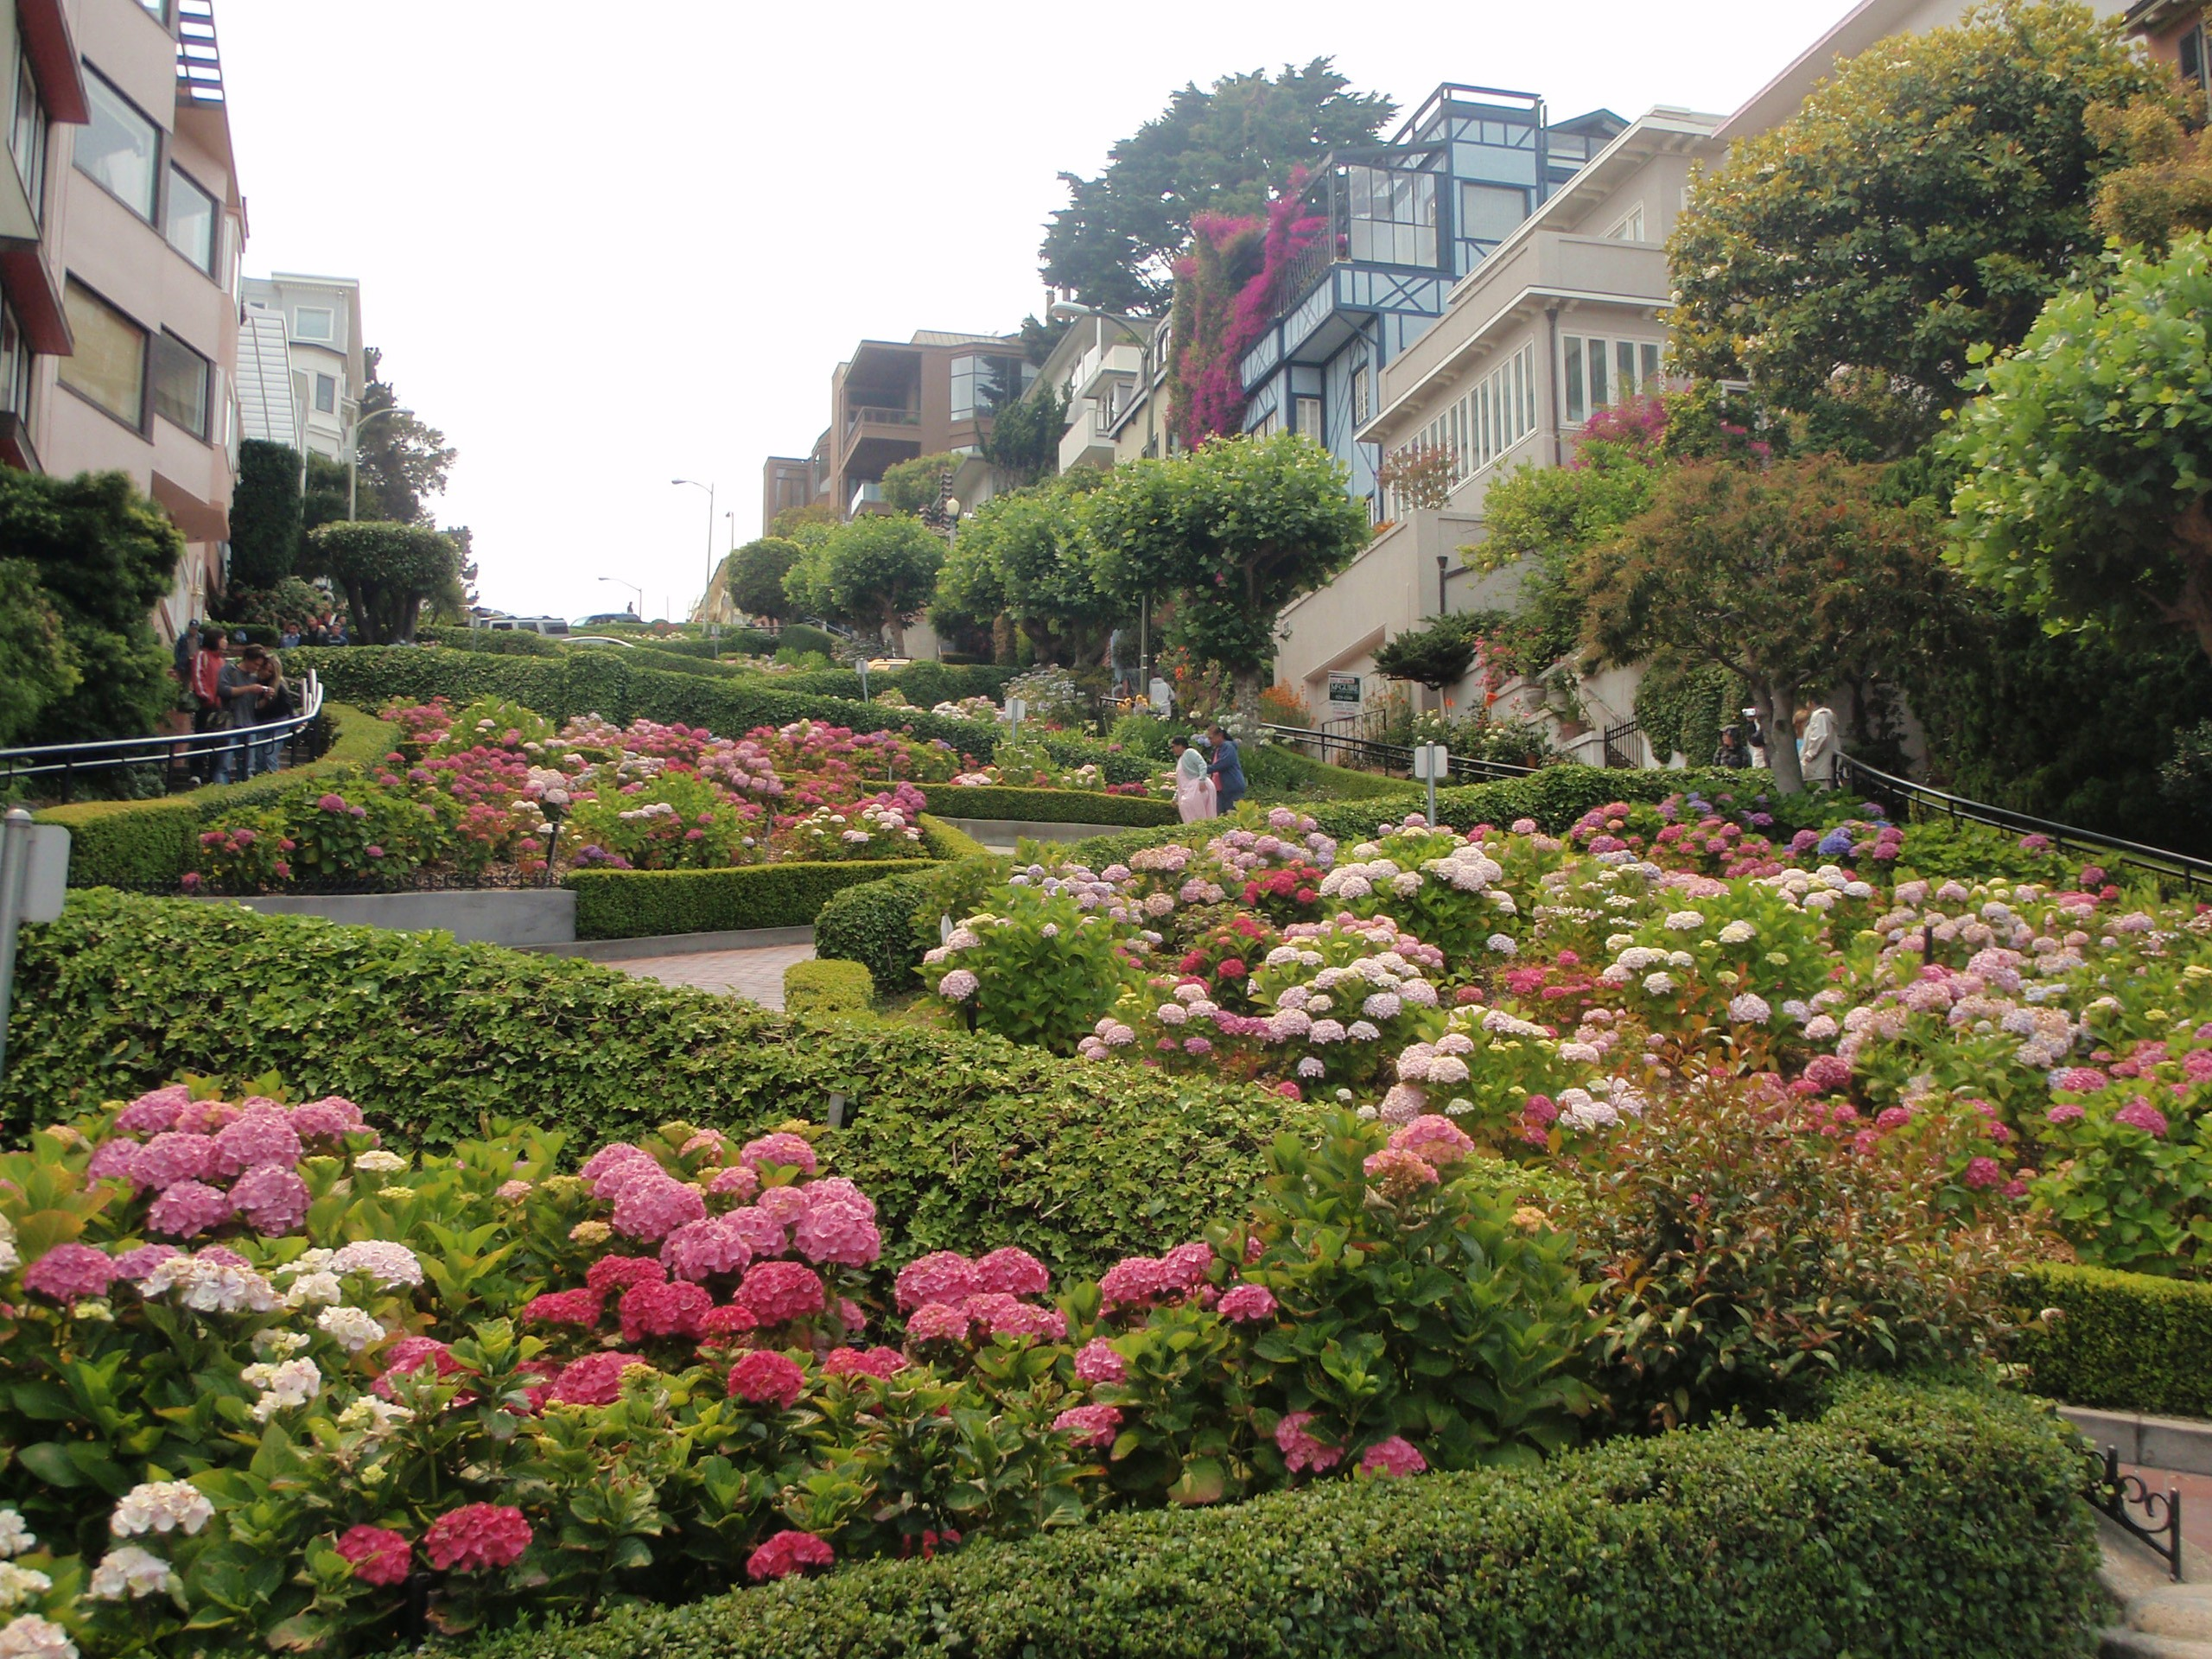 Streets architecture garden buildings San Francisco wallpapers